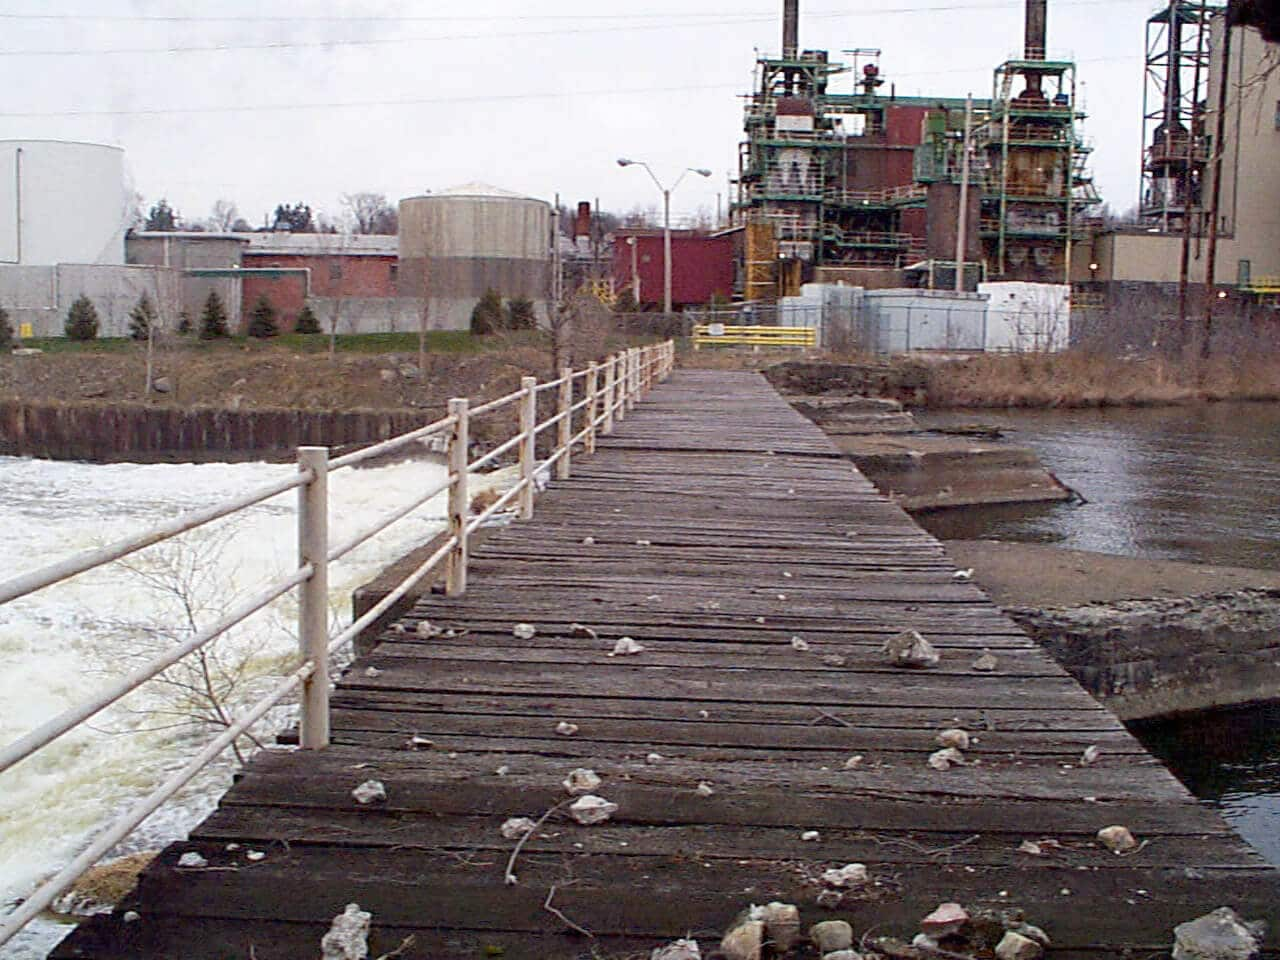 Modeling & Monitoring of PCBs in Sediments for the Kalamazoo River RI/FS